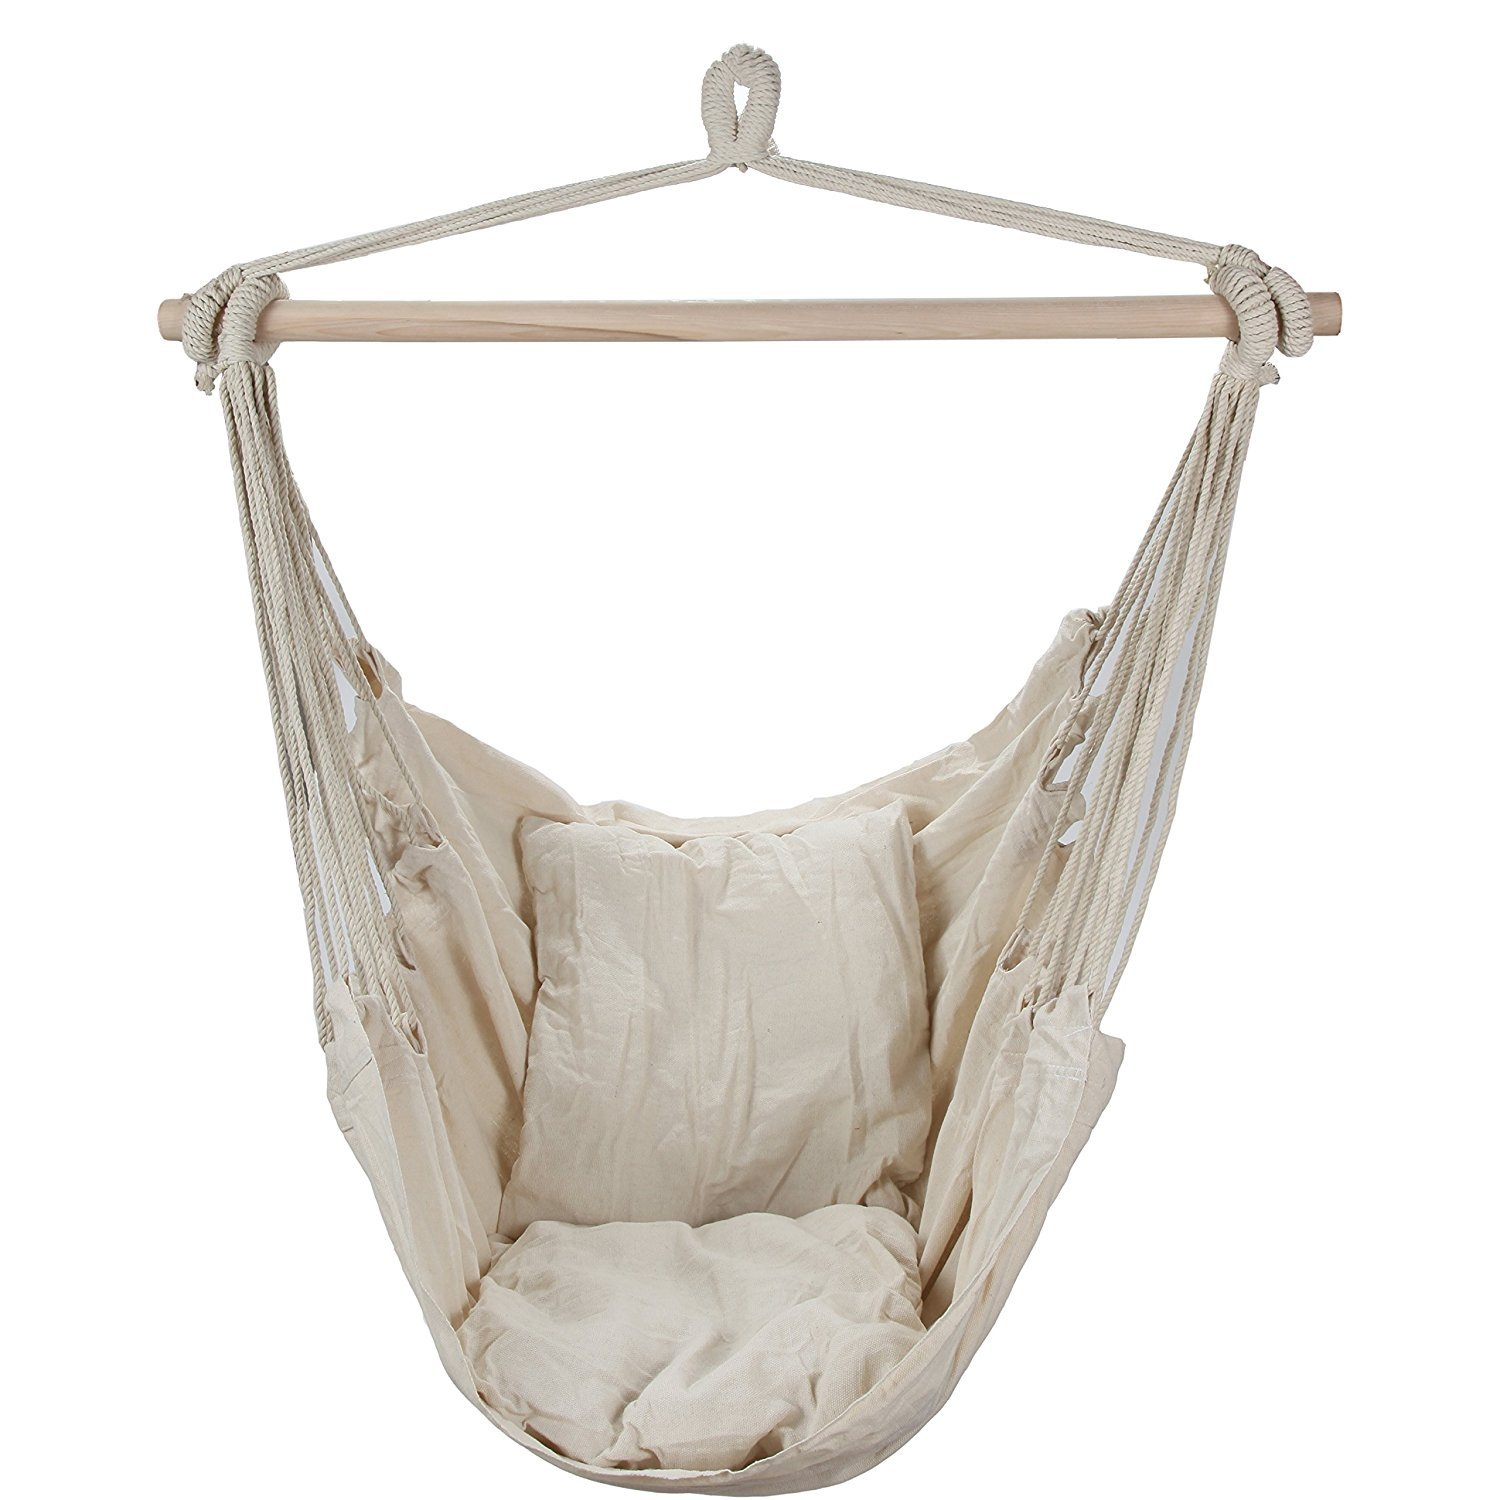 Swing Hanging Hammock Chair With Two Cushions (White) [並行輸入品] B0784H4G6D